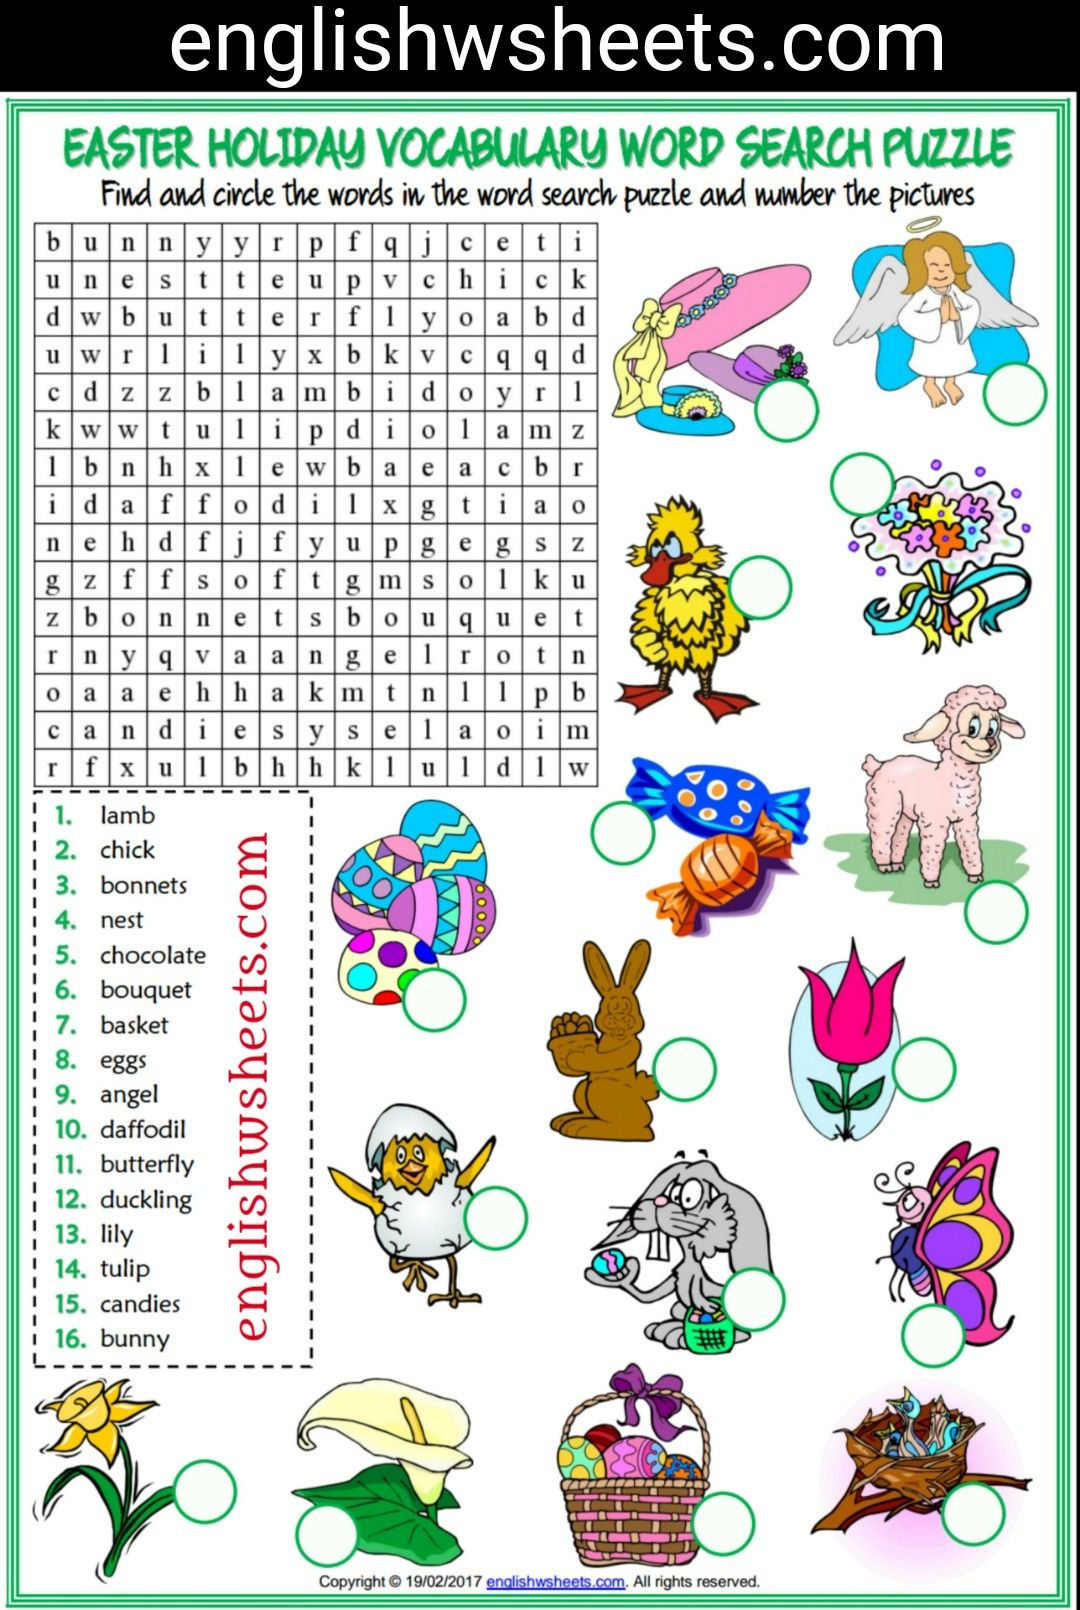 Mcdougal Littell Worksheet Answers Word Easter Esl Printable Word Search Puzzle Worksheet For Kids Easter  Percentage Worksheets Ks2 with Winter Themed Math Worksheets Easter Esl Printable Word Search Puzzle Worksheet For Kids Easter Esl  Printable  High School English Worksheets